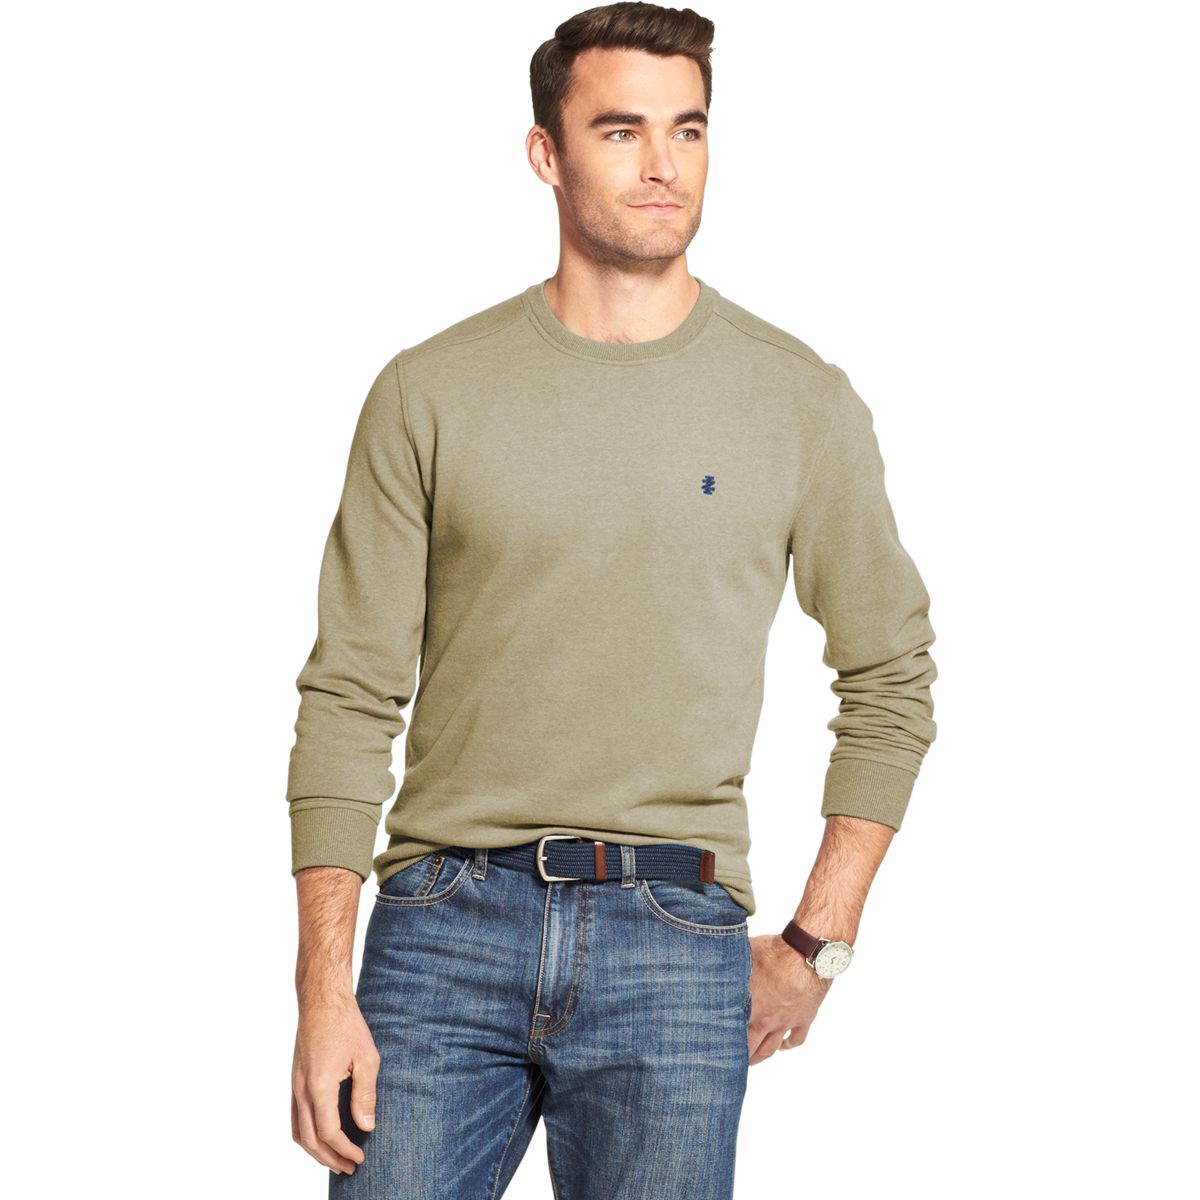 Izod Men's Long-Sleeve Supersoft Fleece Crewneck Sweater - Brown, L